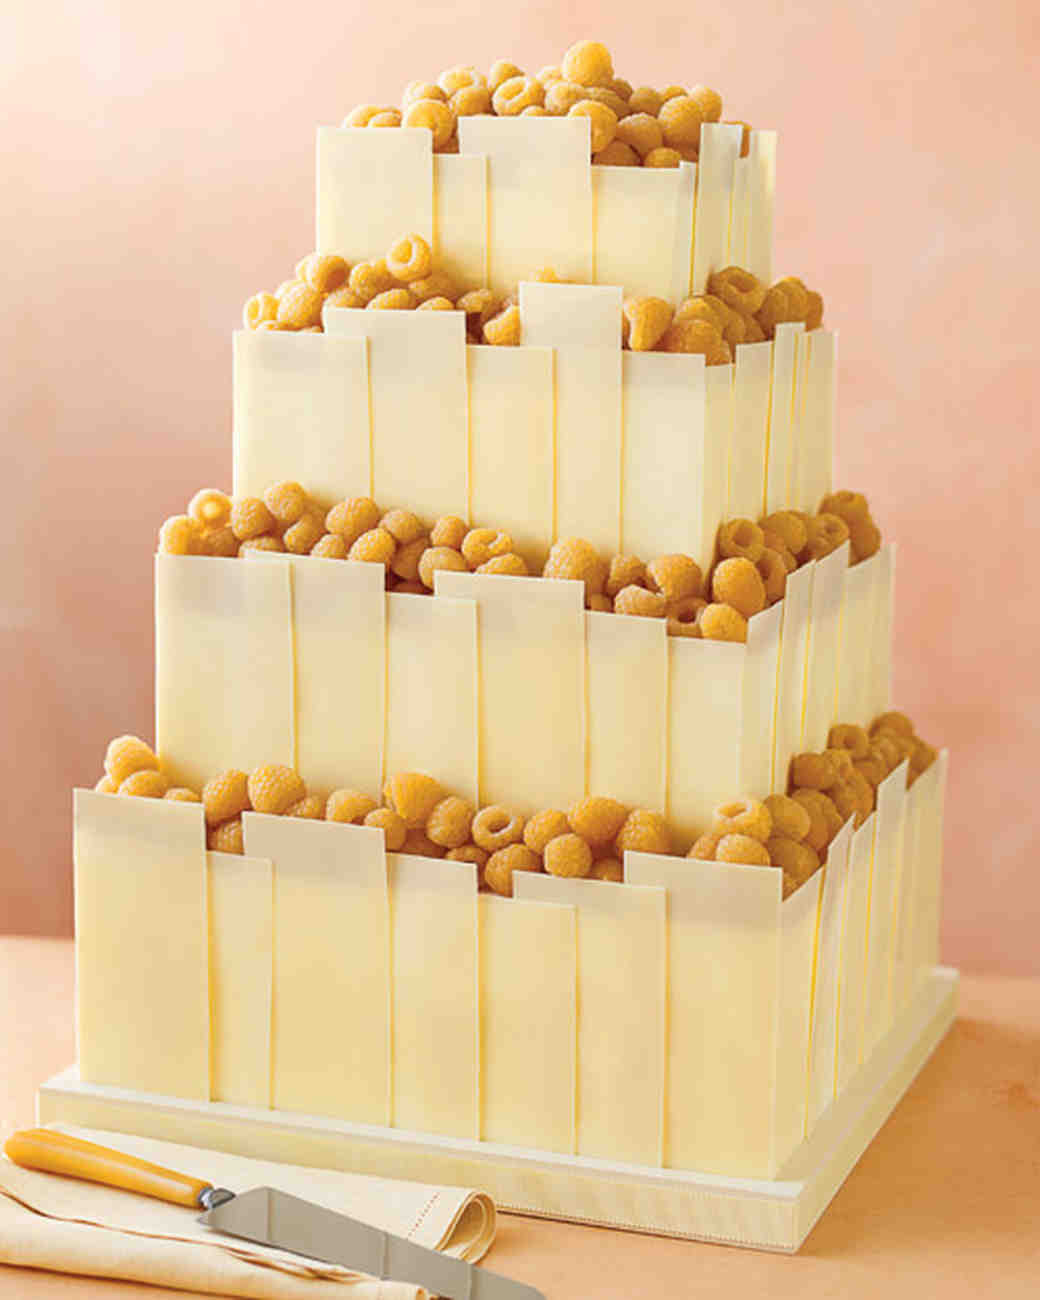 Best ideas about DIY Wedding Cake . Save or Pin 11 DIY Wedding Cake Ideas That Will Transform Your Tiers Now.